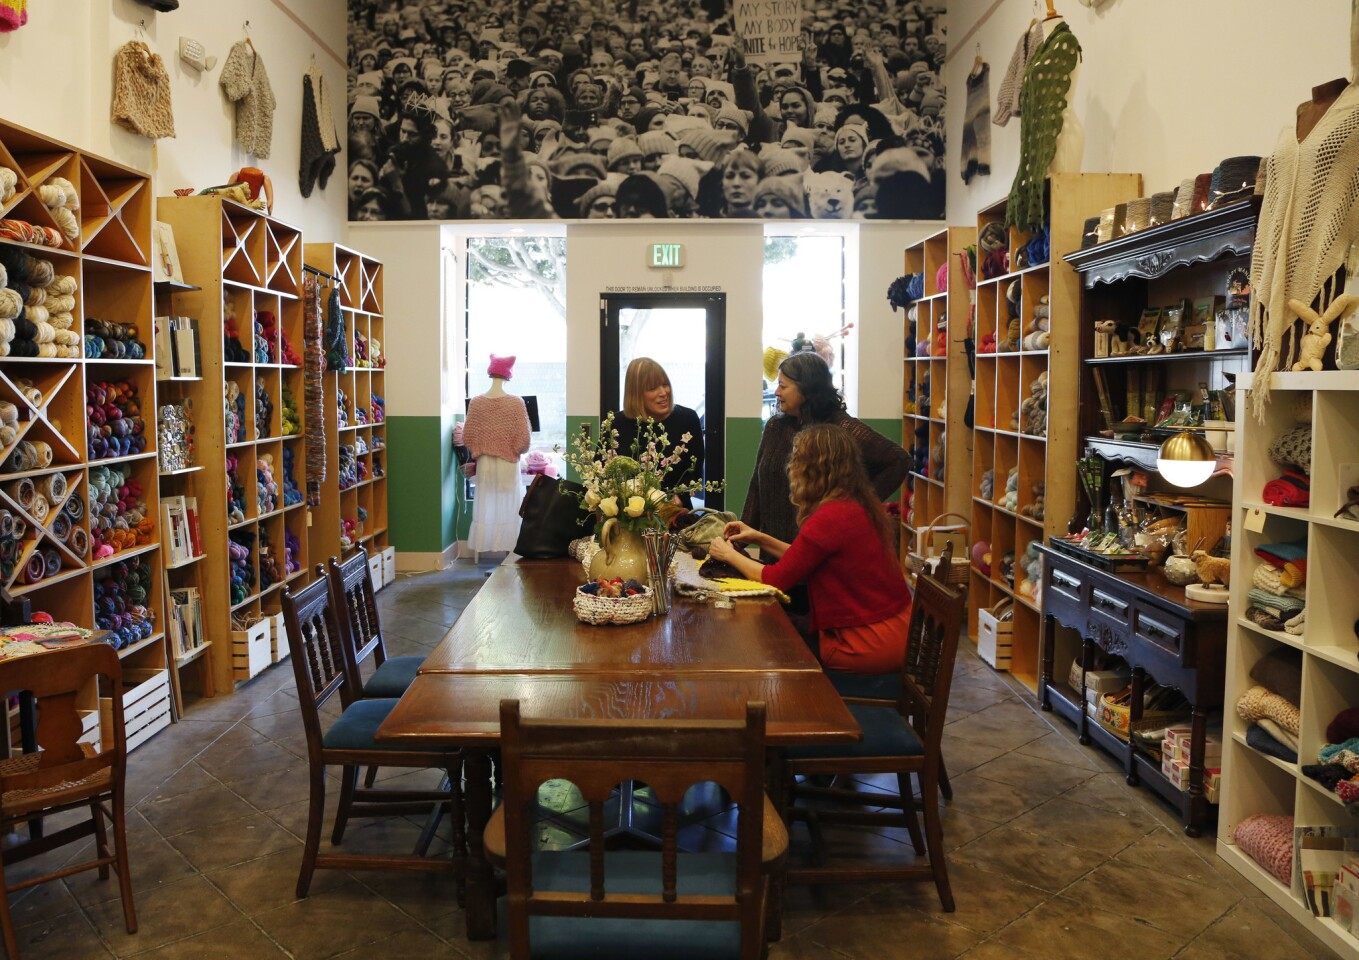 Little Knittery owner Kat Coyle, right, sitting, talks to customers at her yarn shop in Los Feliz.